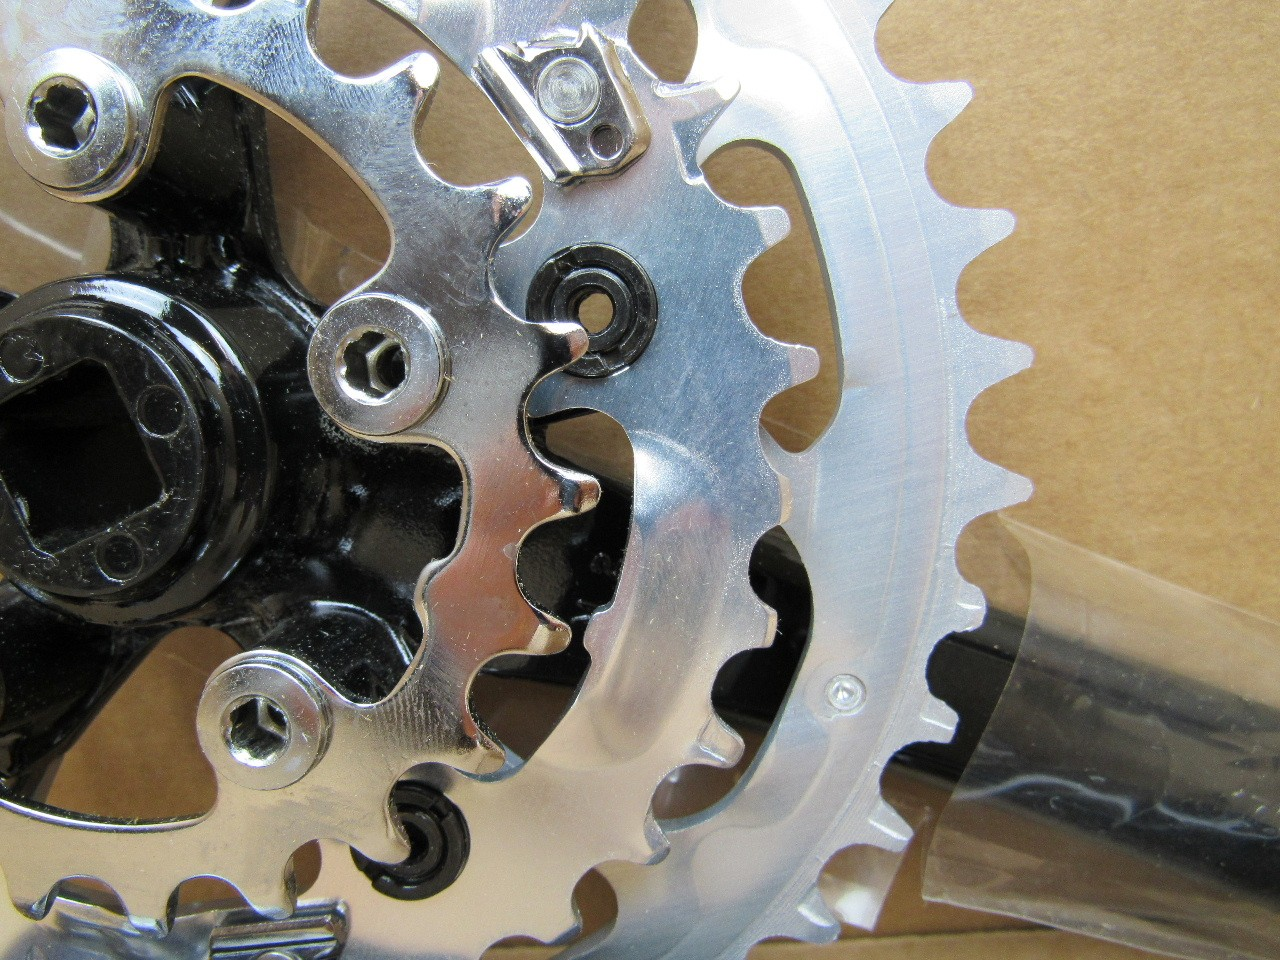 NOS Shimano Deore LX Triple Crankset w//170 mm Crankarms and 42x32x22 Chainrings